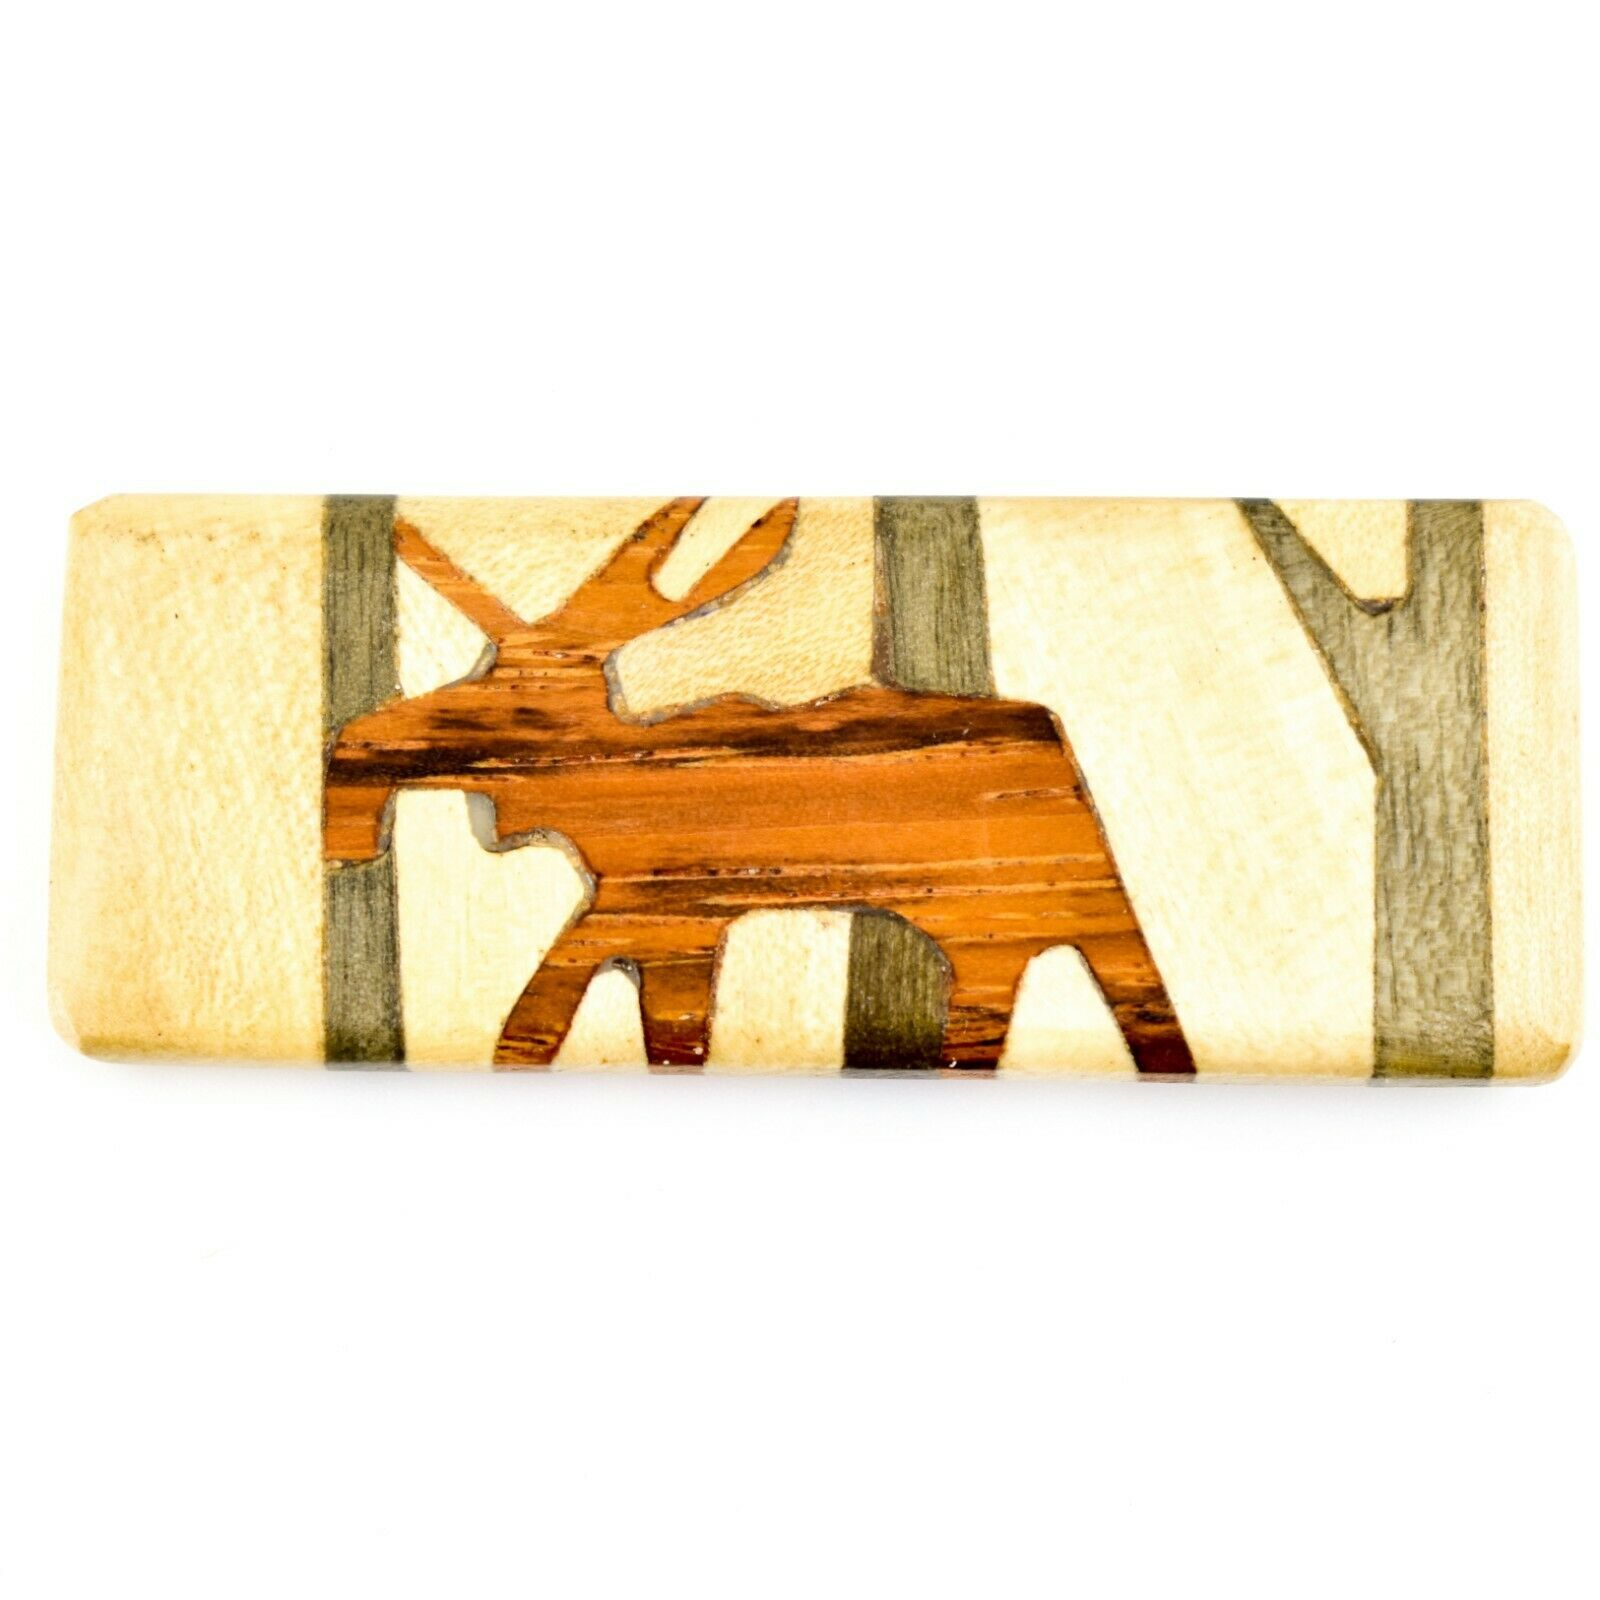 Northwoods Wooden Parquetry Rustic Moose Design Tile Magnet